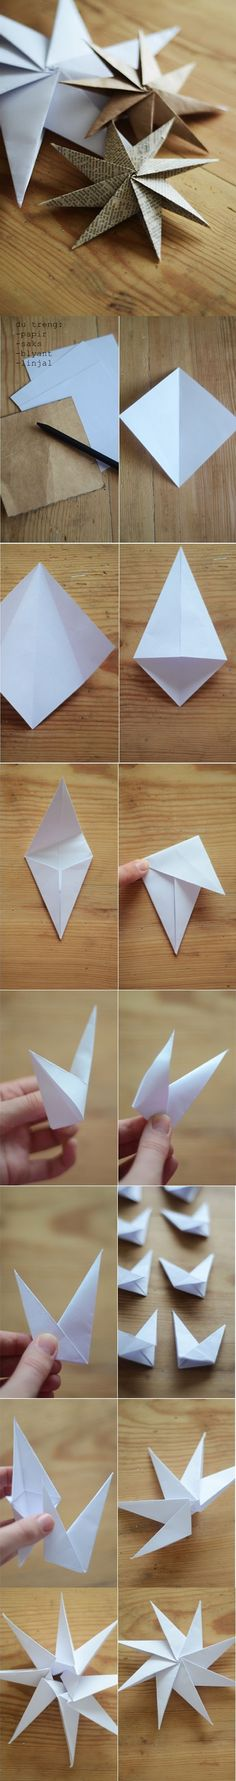 Considering my love of origami this is a must DIY : Paper Star Ornaments Origami Paper, Diy Paper, Paper Crafting, Diy Origami, Dollar Origami, Origami Ideas, Diy And Crafts, Crafts For Kids, Arts And Crafts